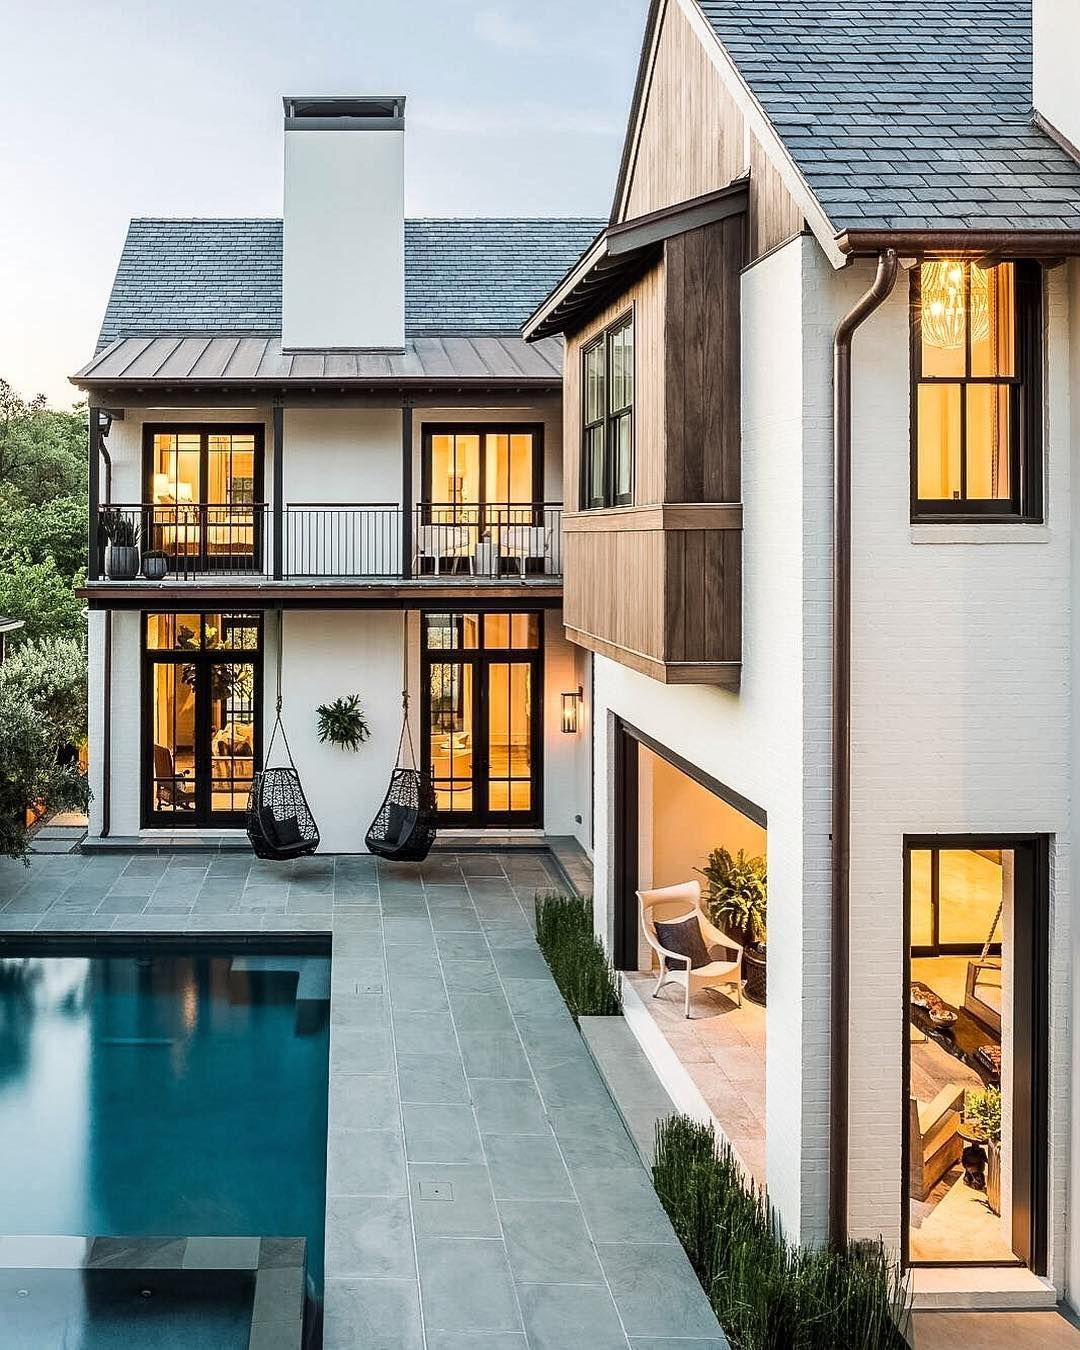 Christian Daw On Instagram So I M Pretty Sure I M Using Some Hanging Chairs On The Boathouse But I House Exterior Dream House Exterior House Styles